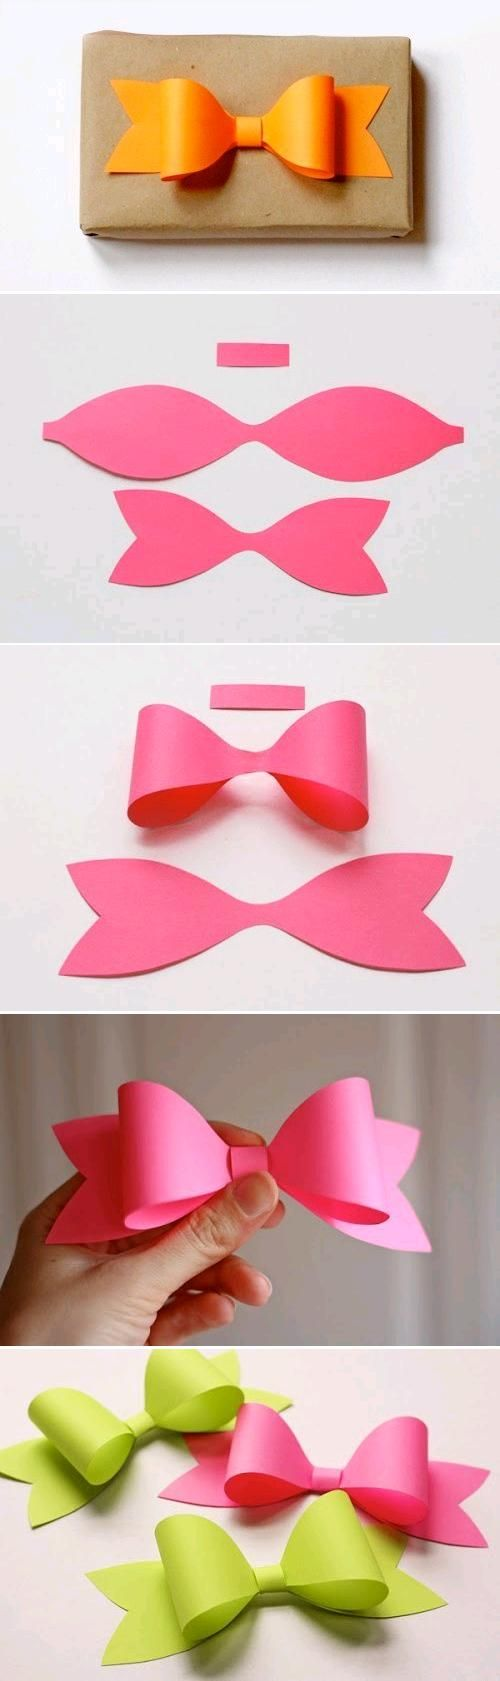 Cute bow for presents.